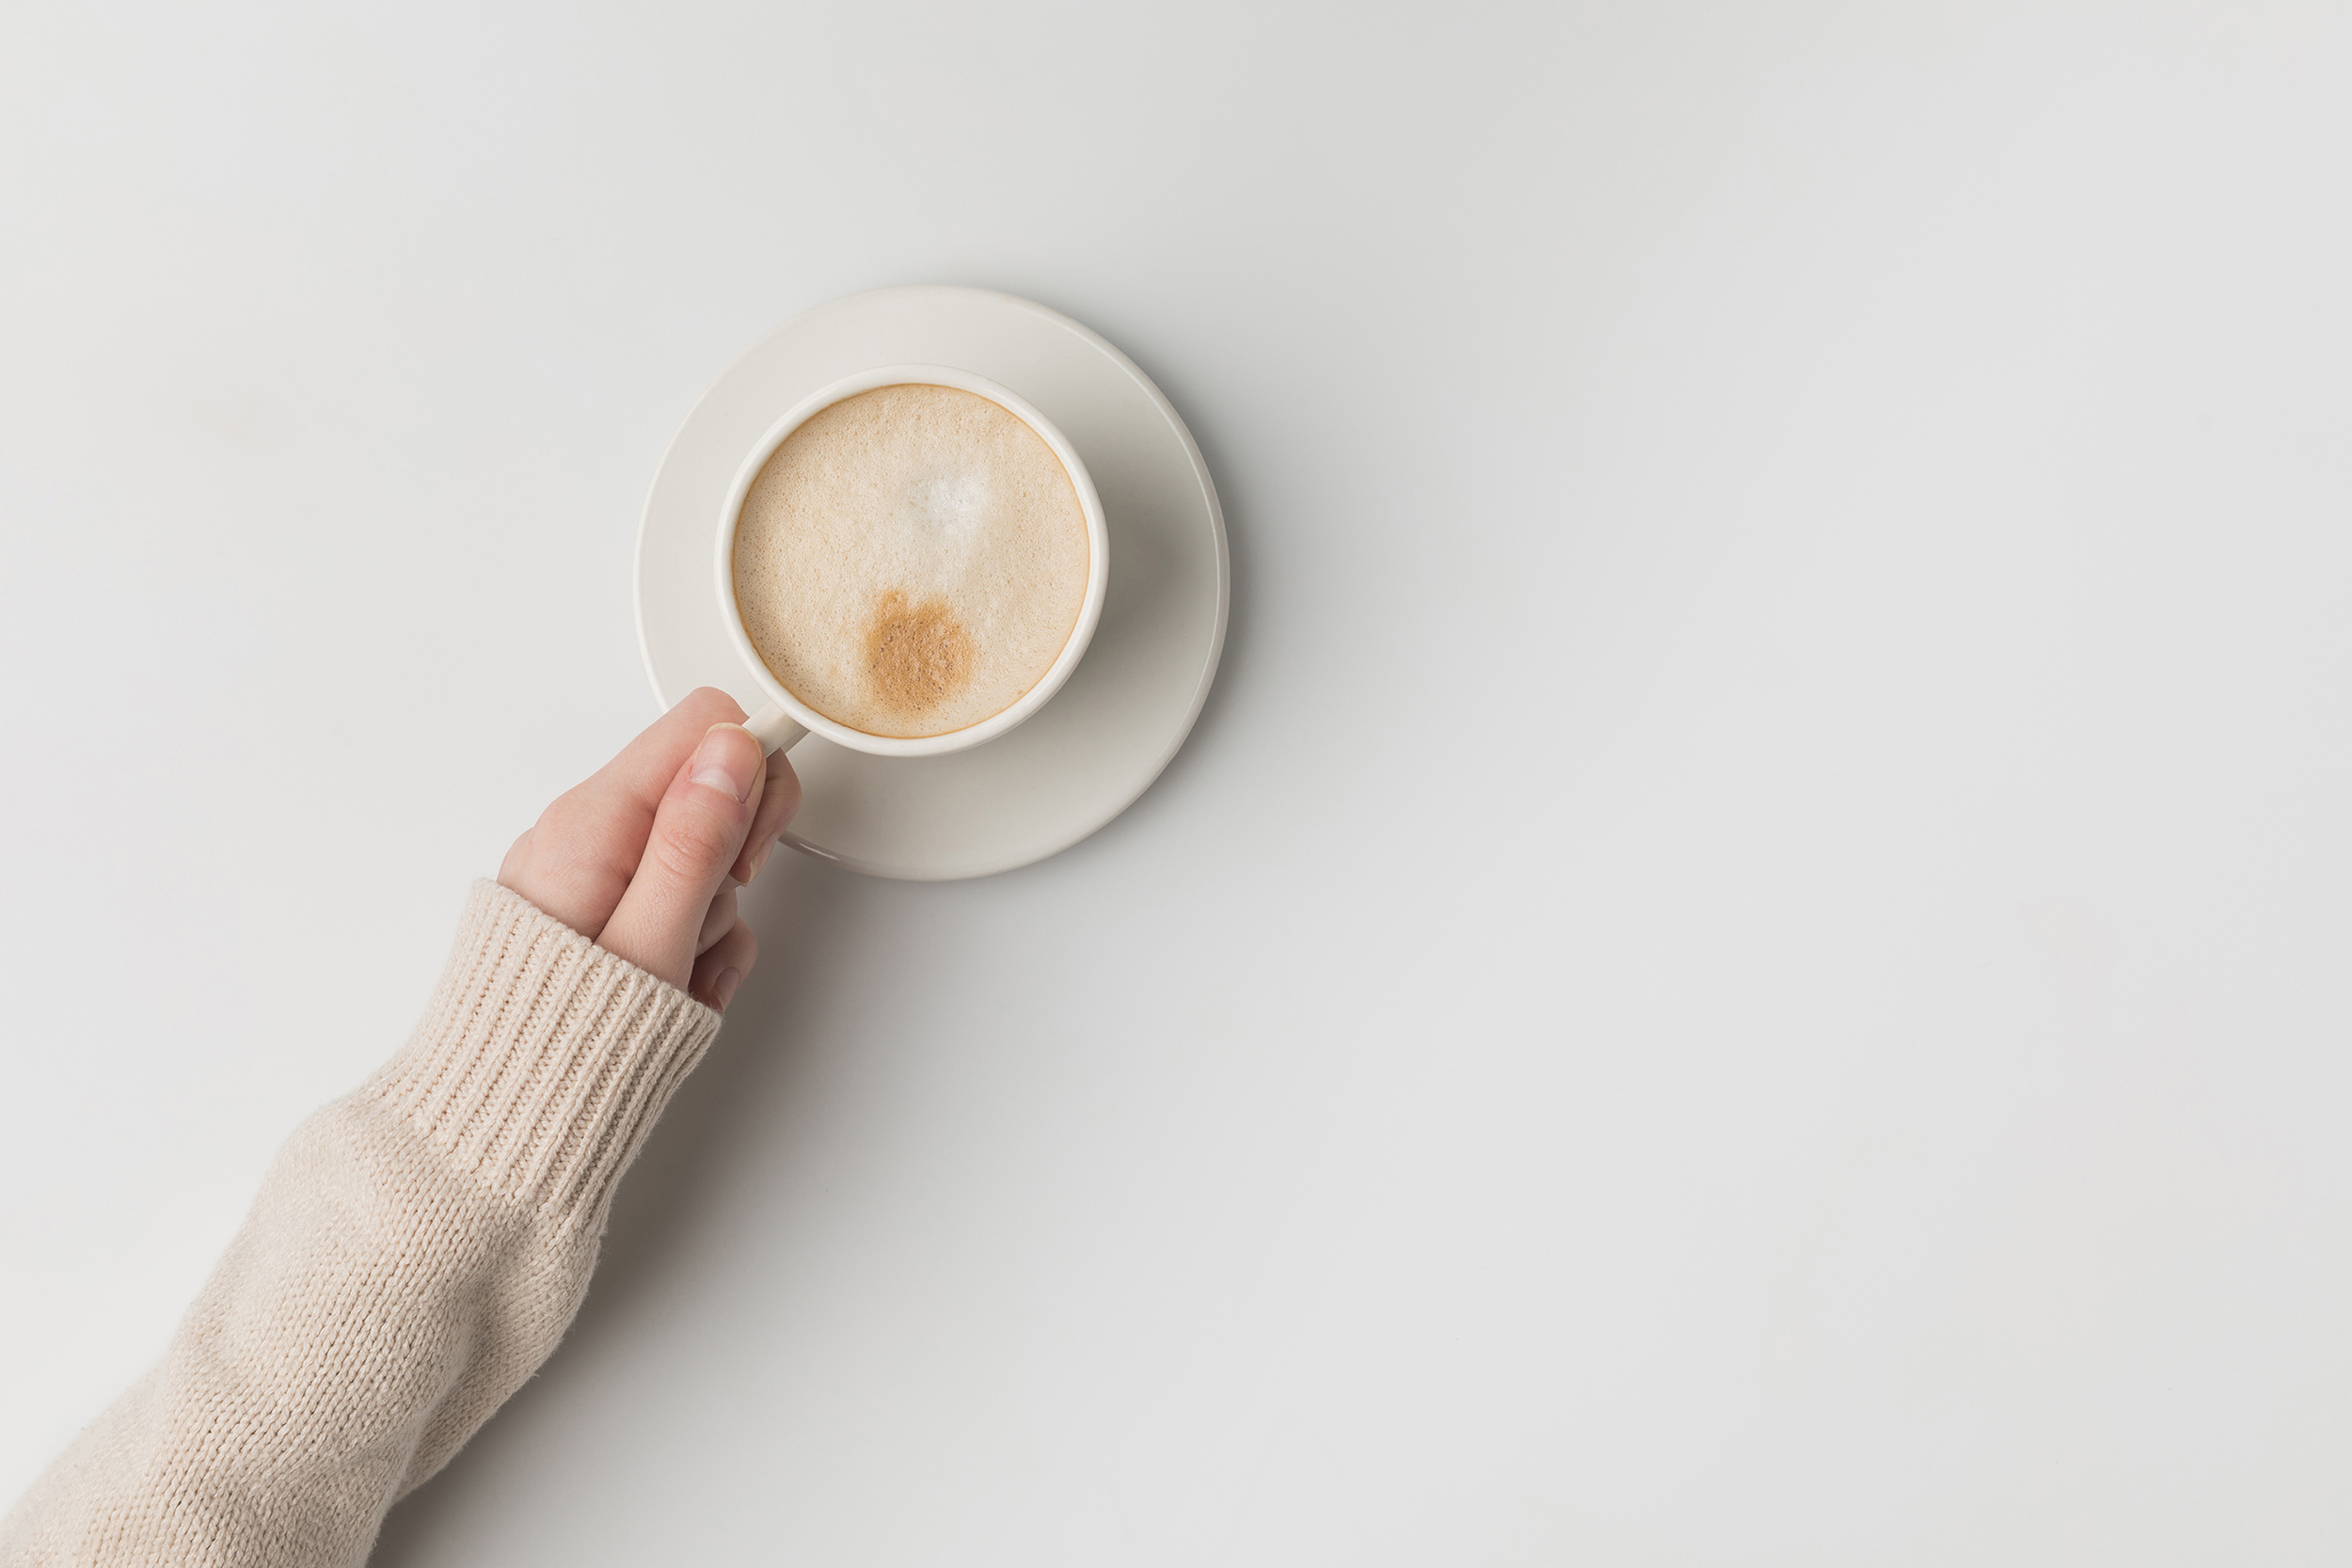 A close up of a hand holding a capuccino